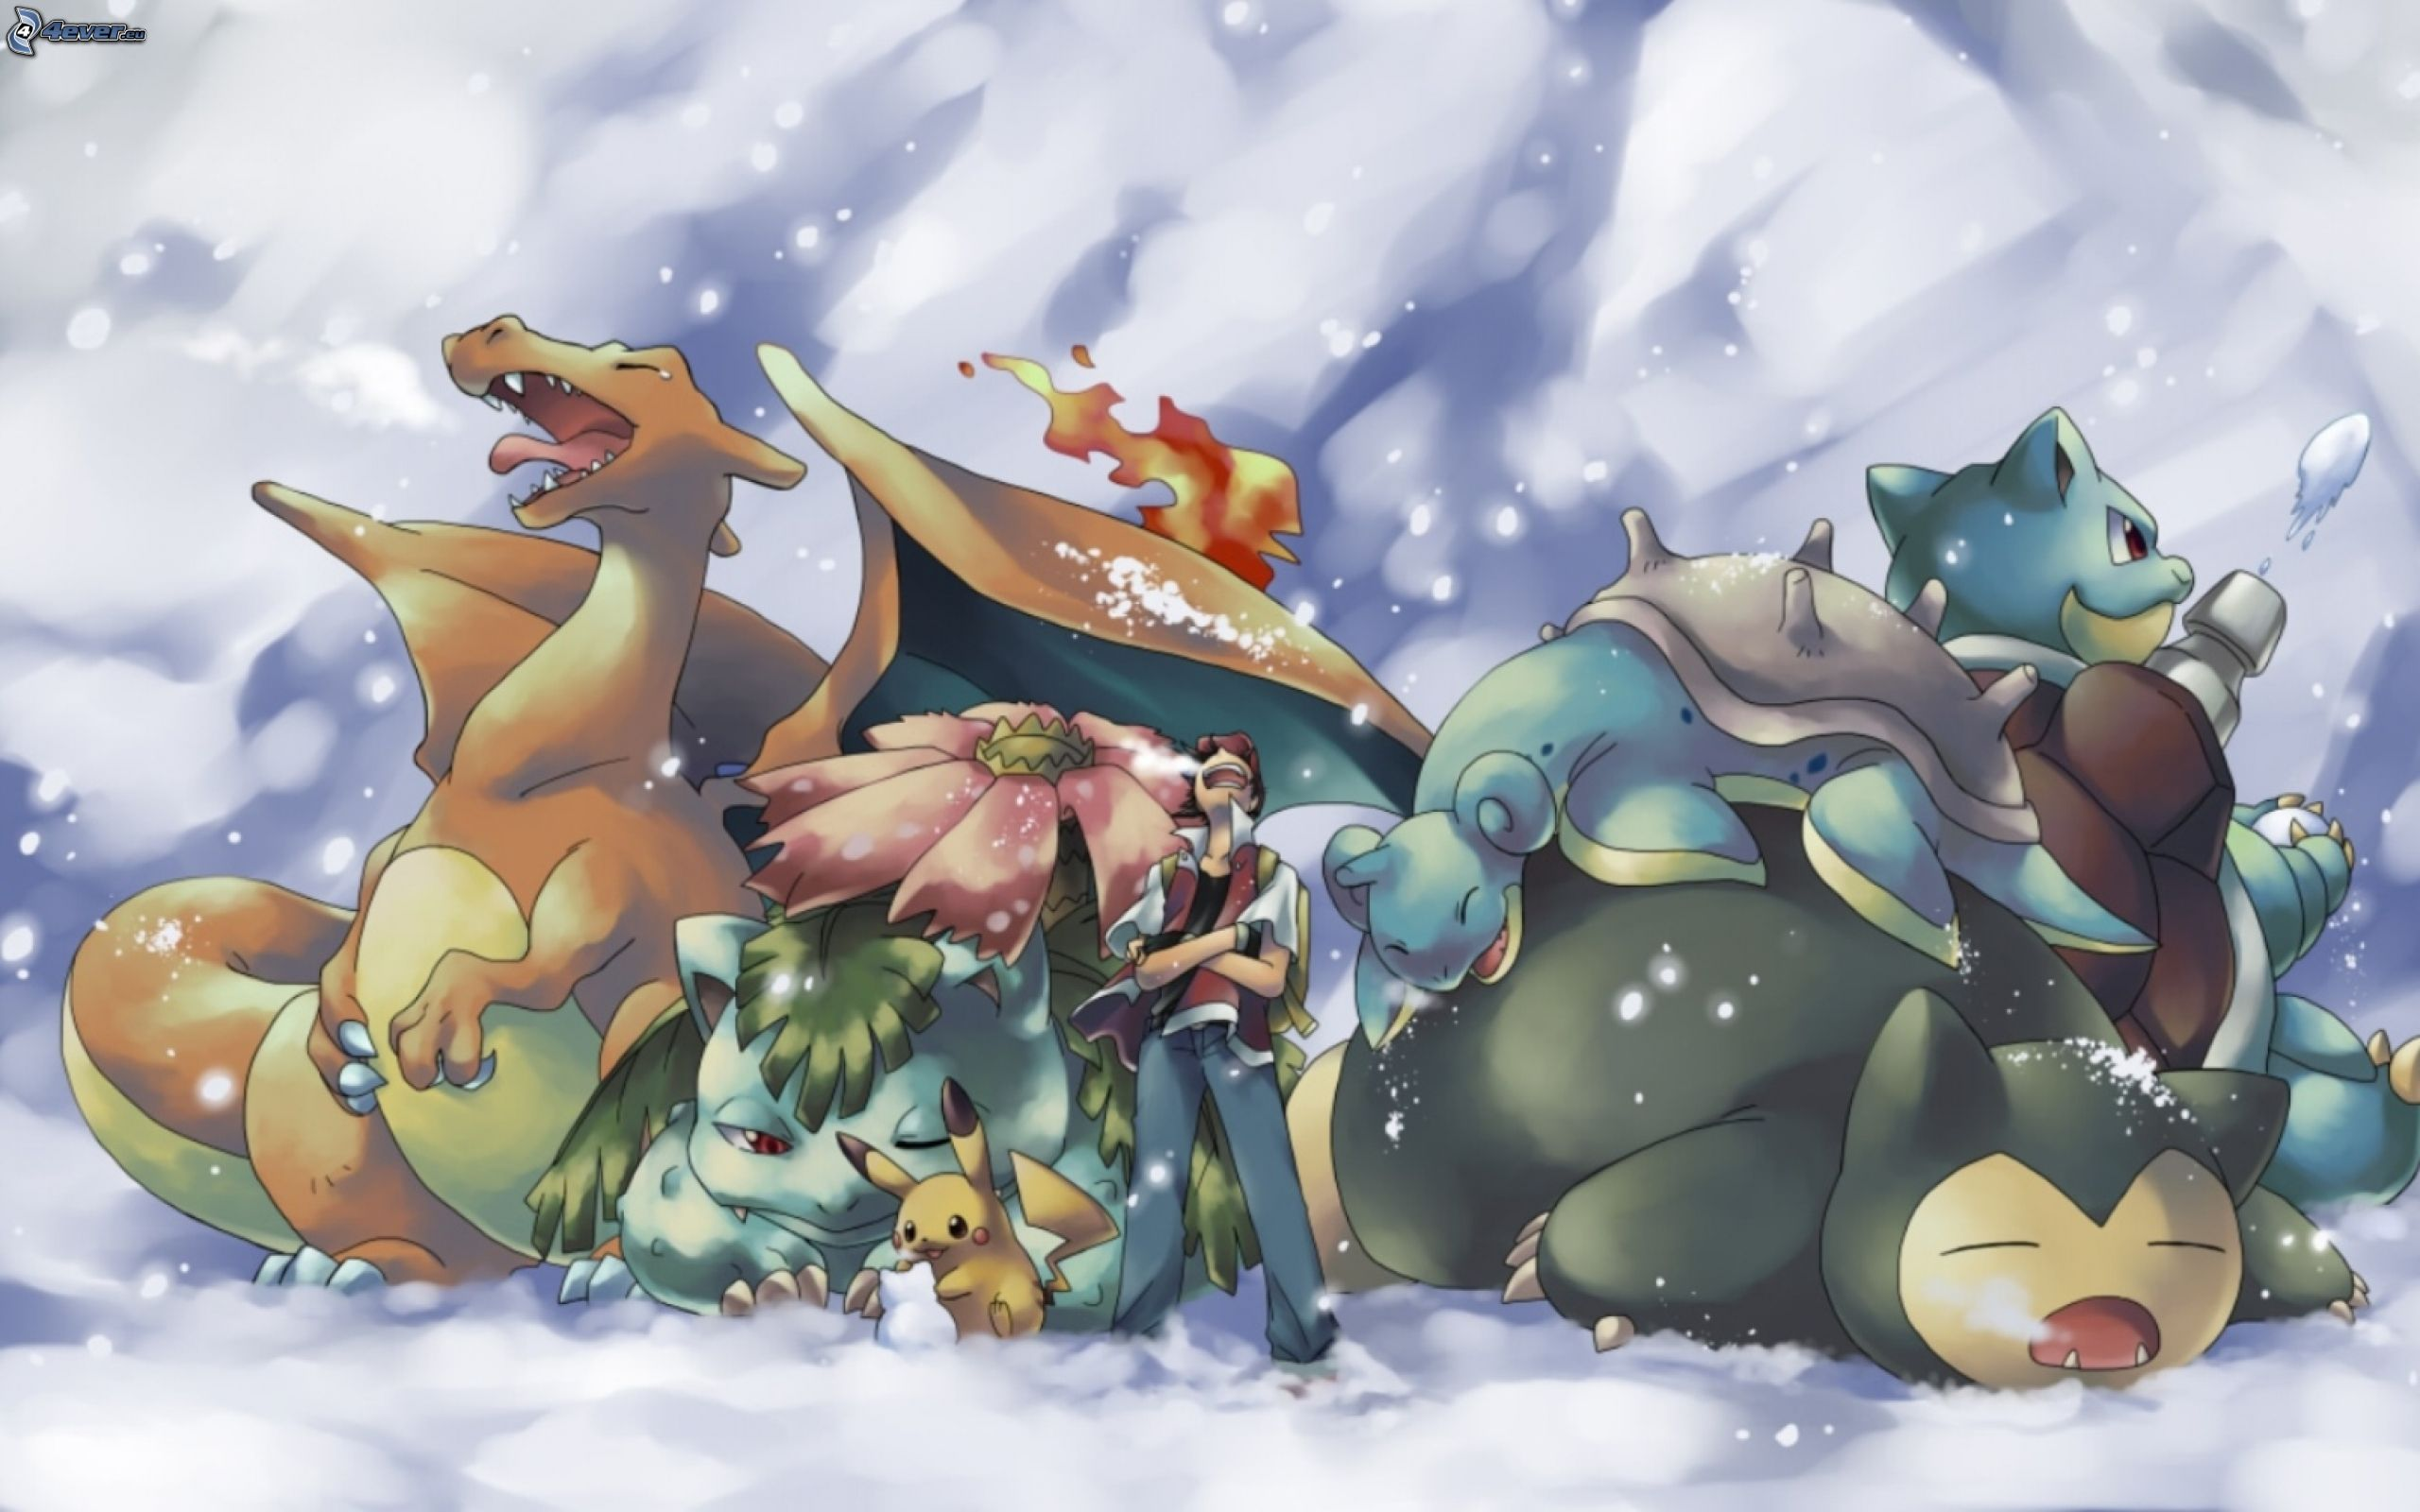 Pikachu And Charizard Best Friends Download picture